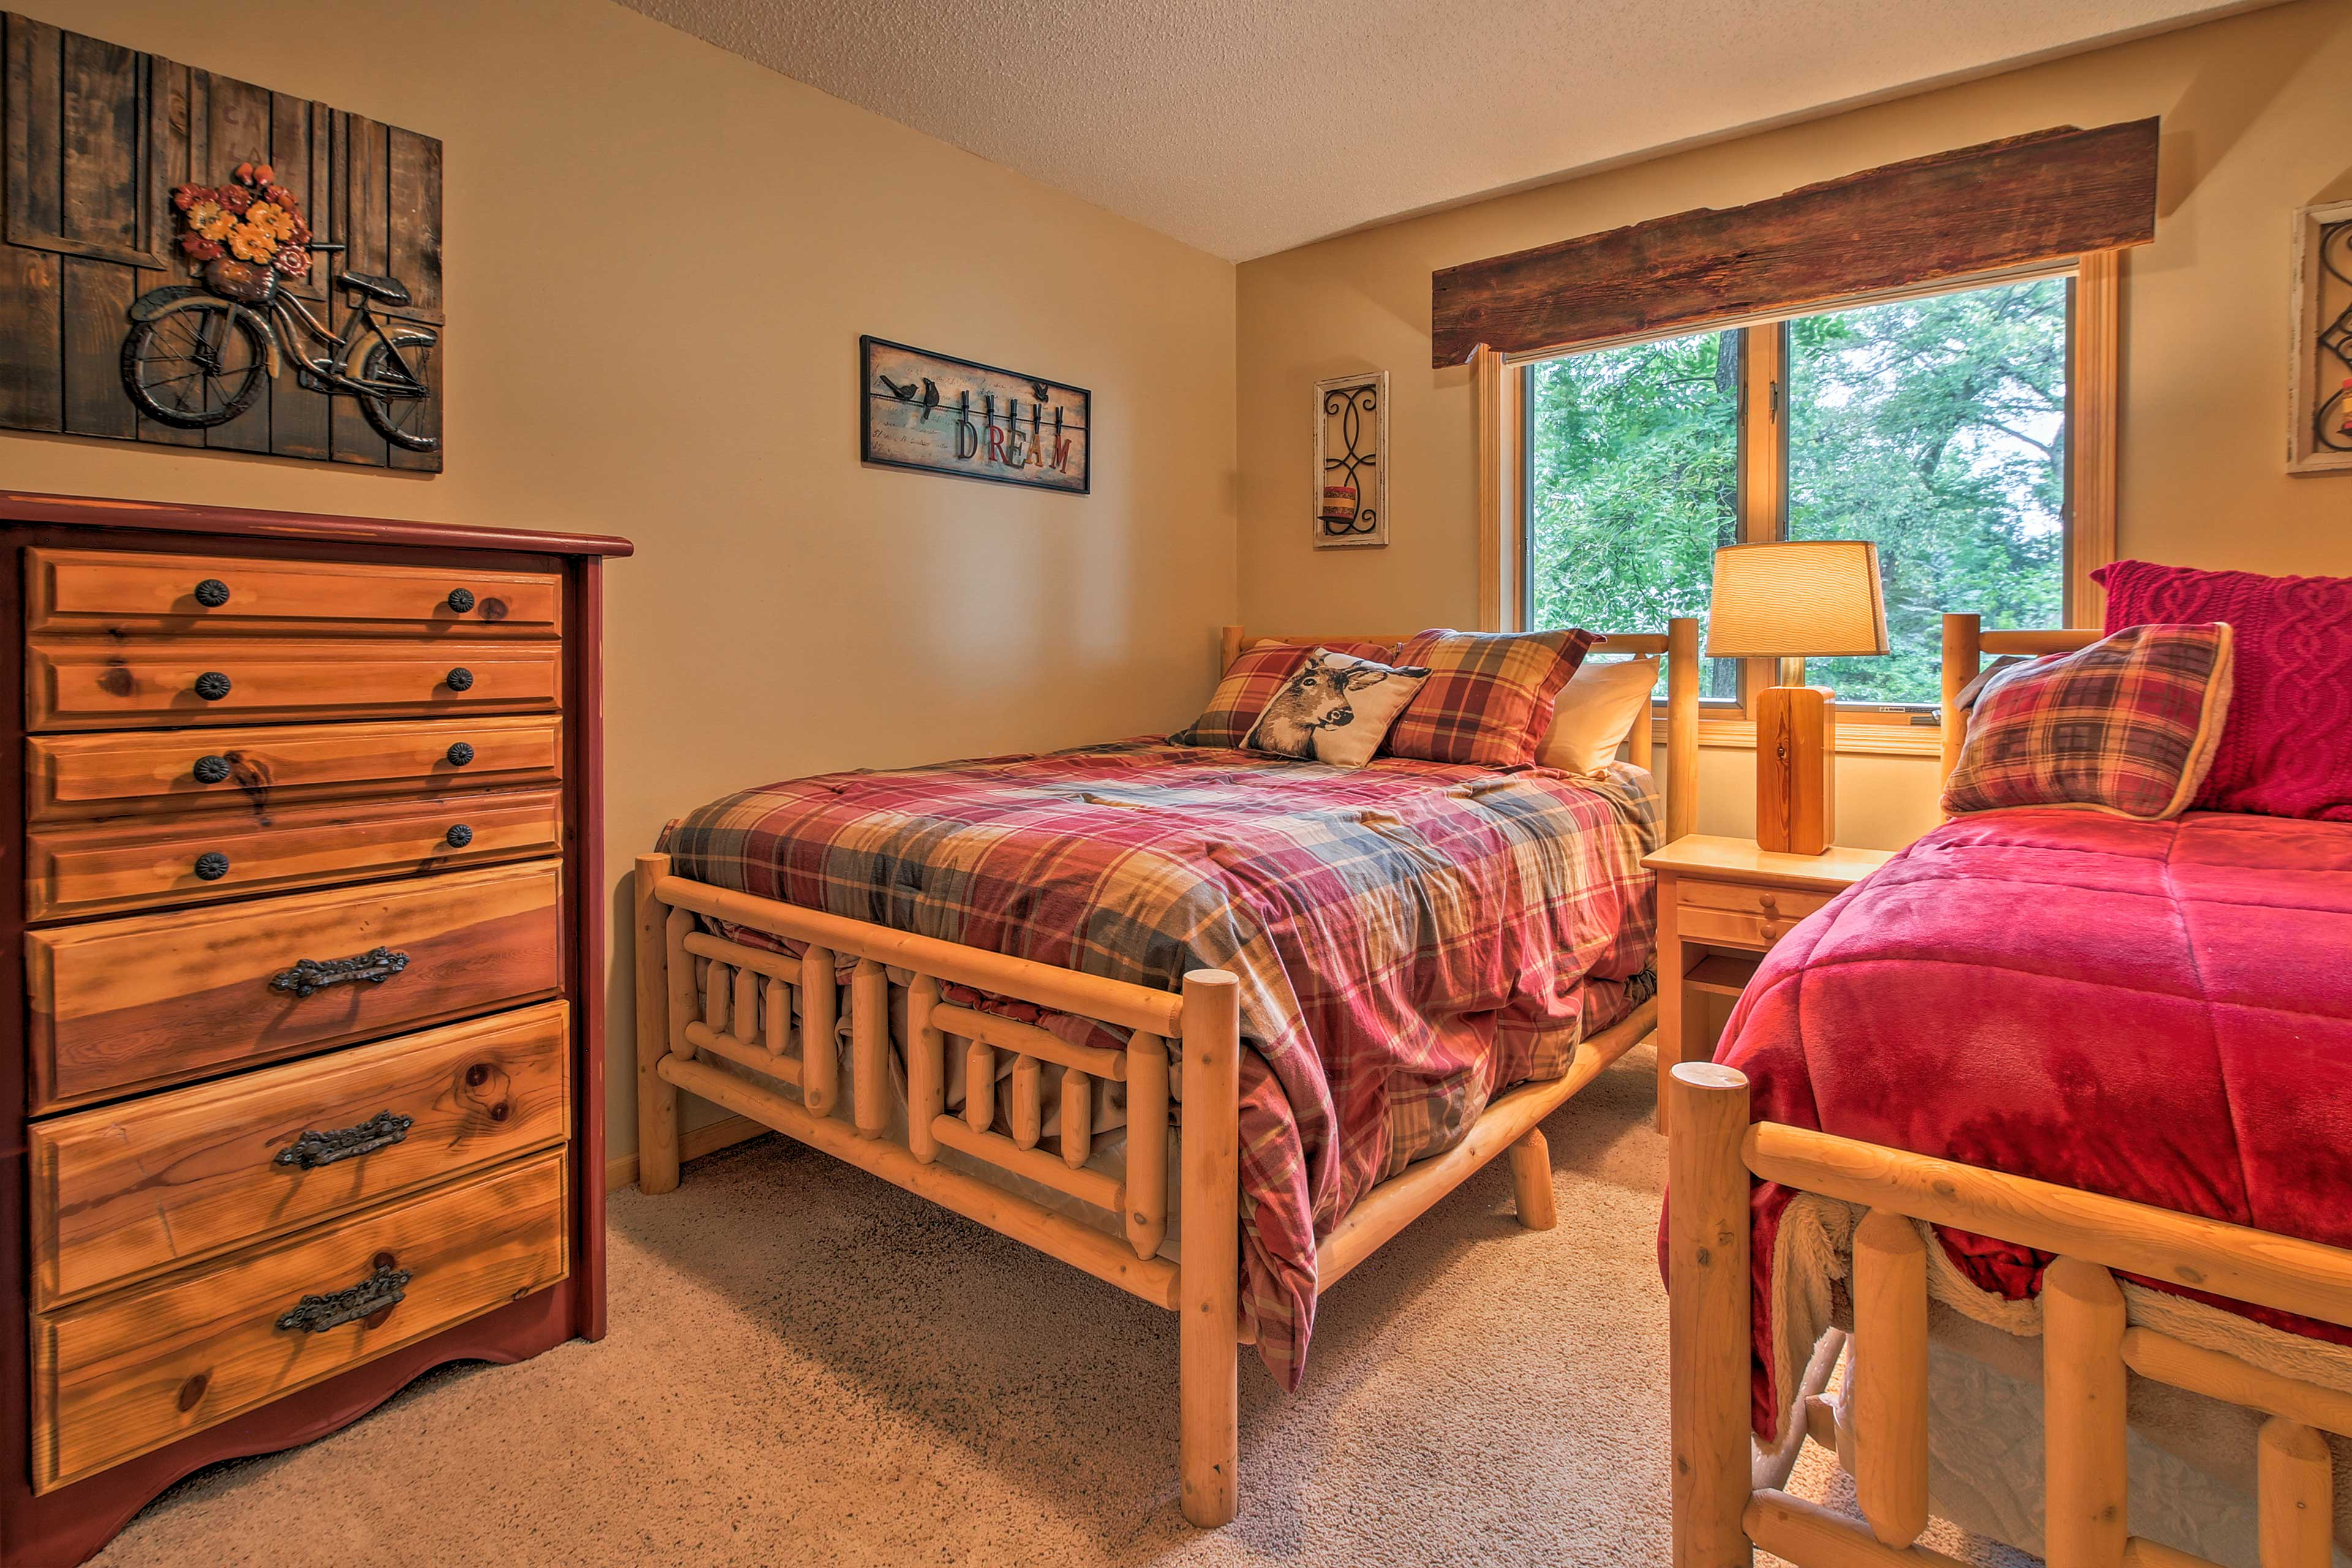 This bedroom includes a twin and full bed.